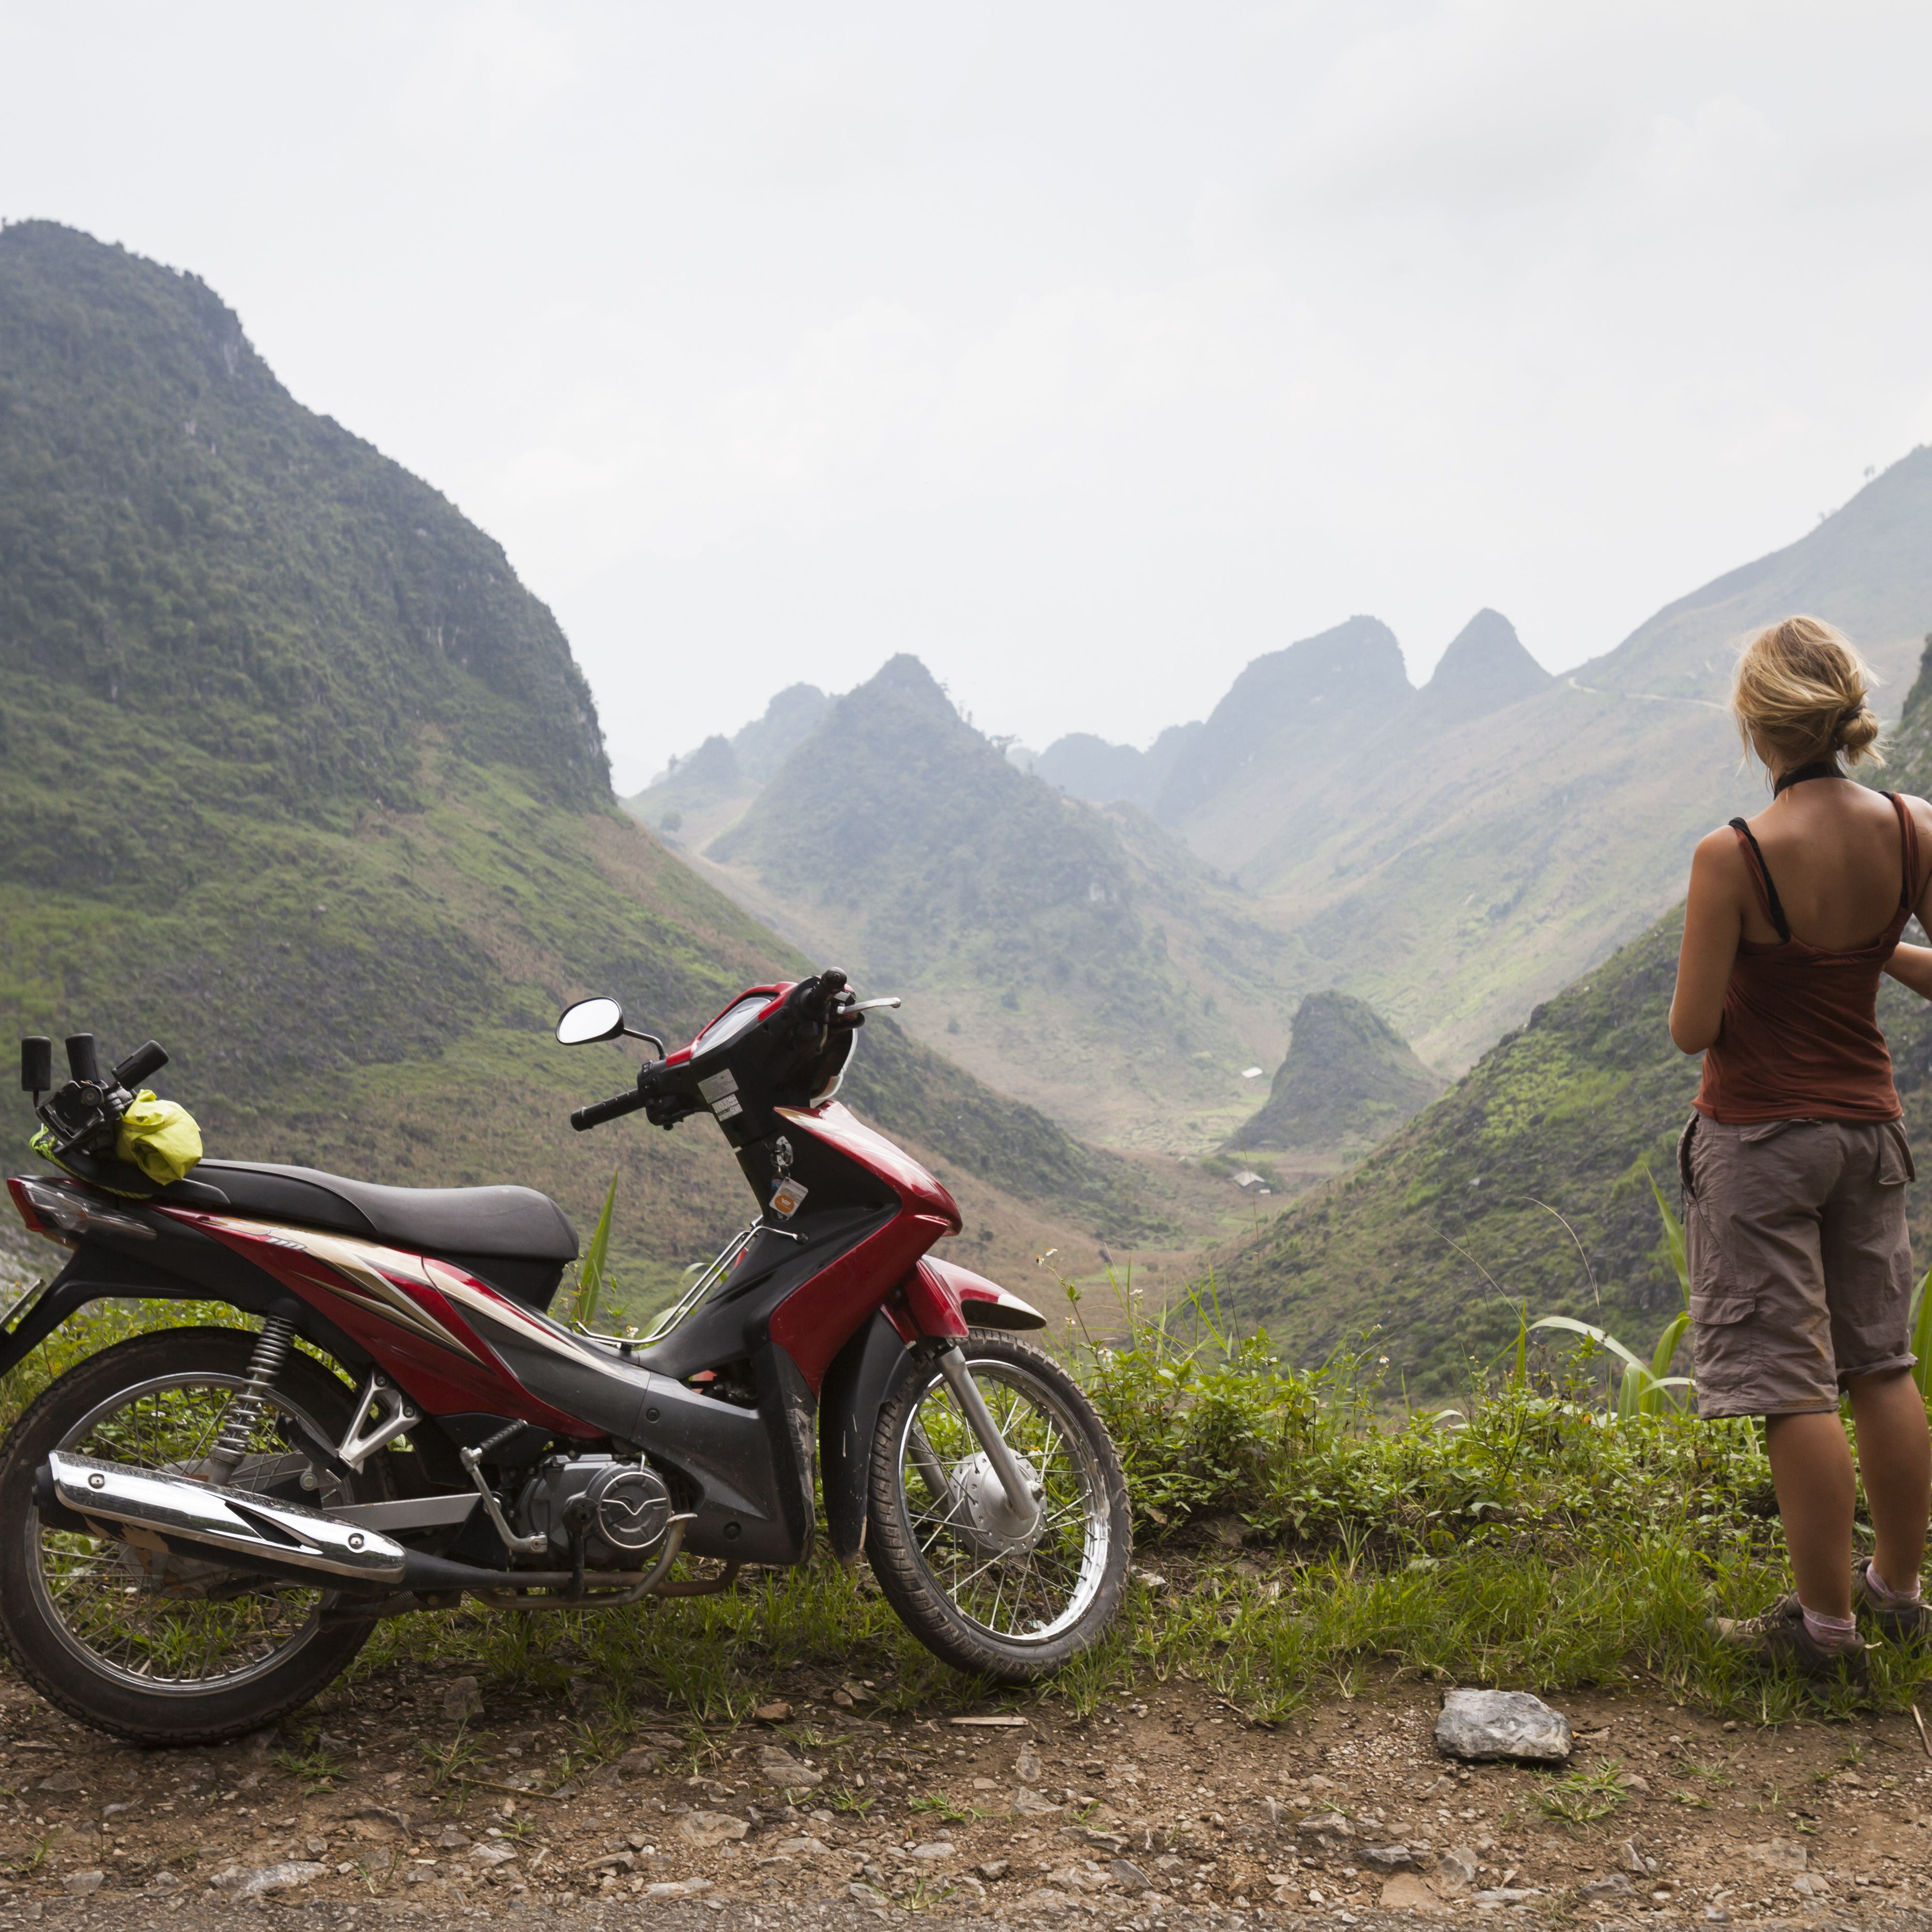 Renting a Motorbike in Southeast Asia: Safety Tips